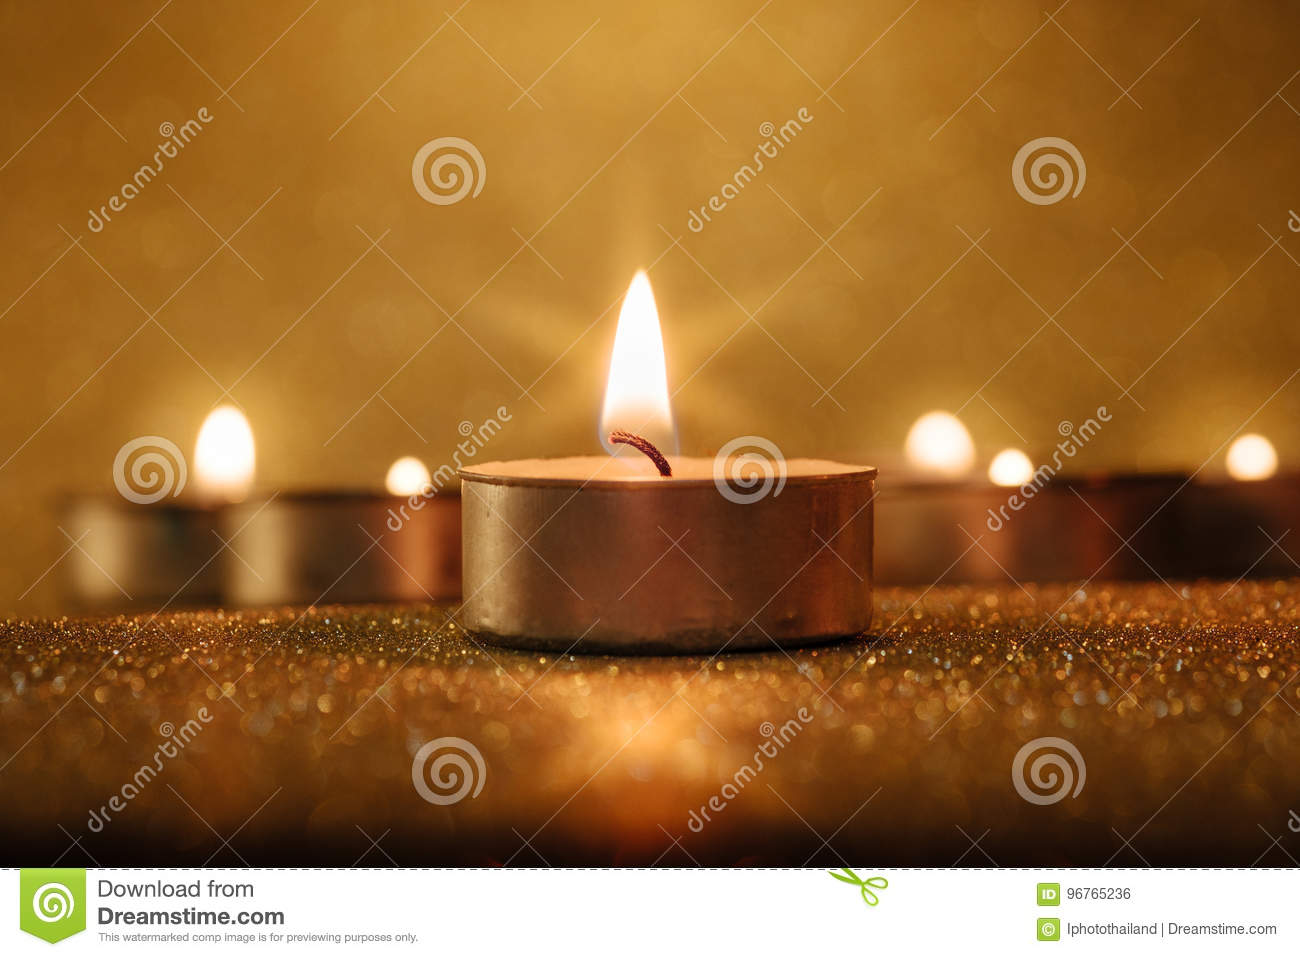 Prayer and hope concept. Retro candle light with lighting effect